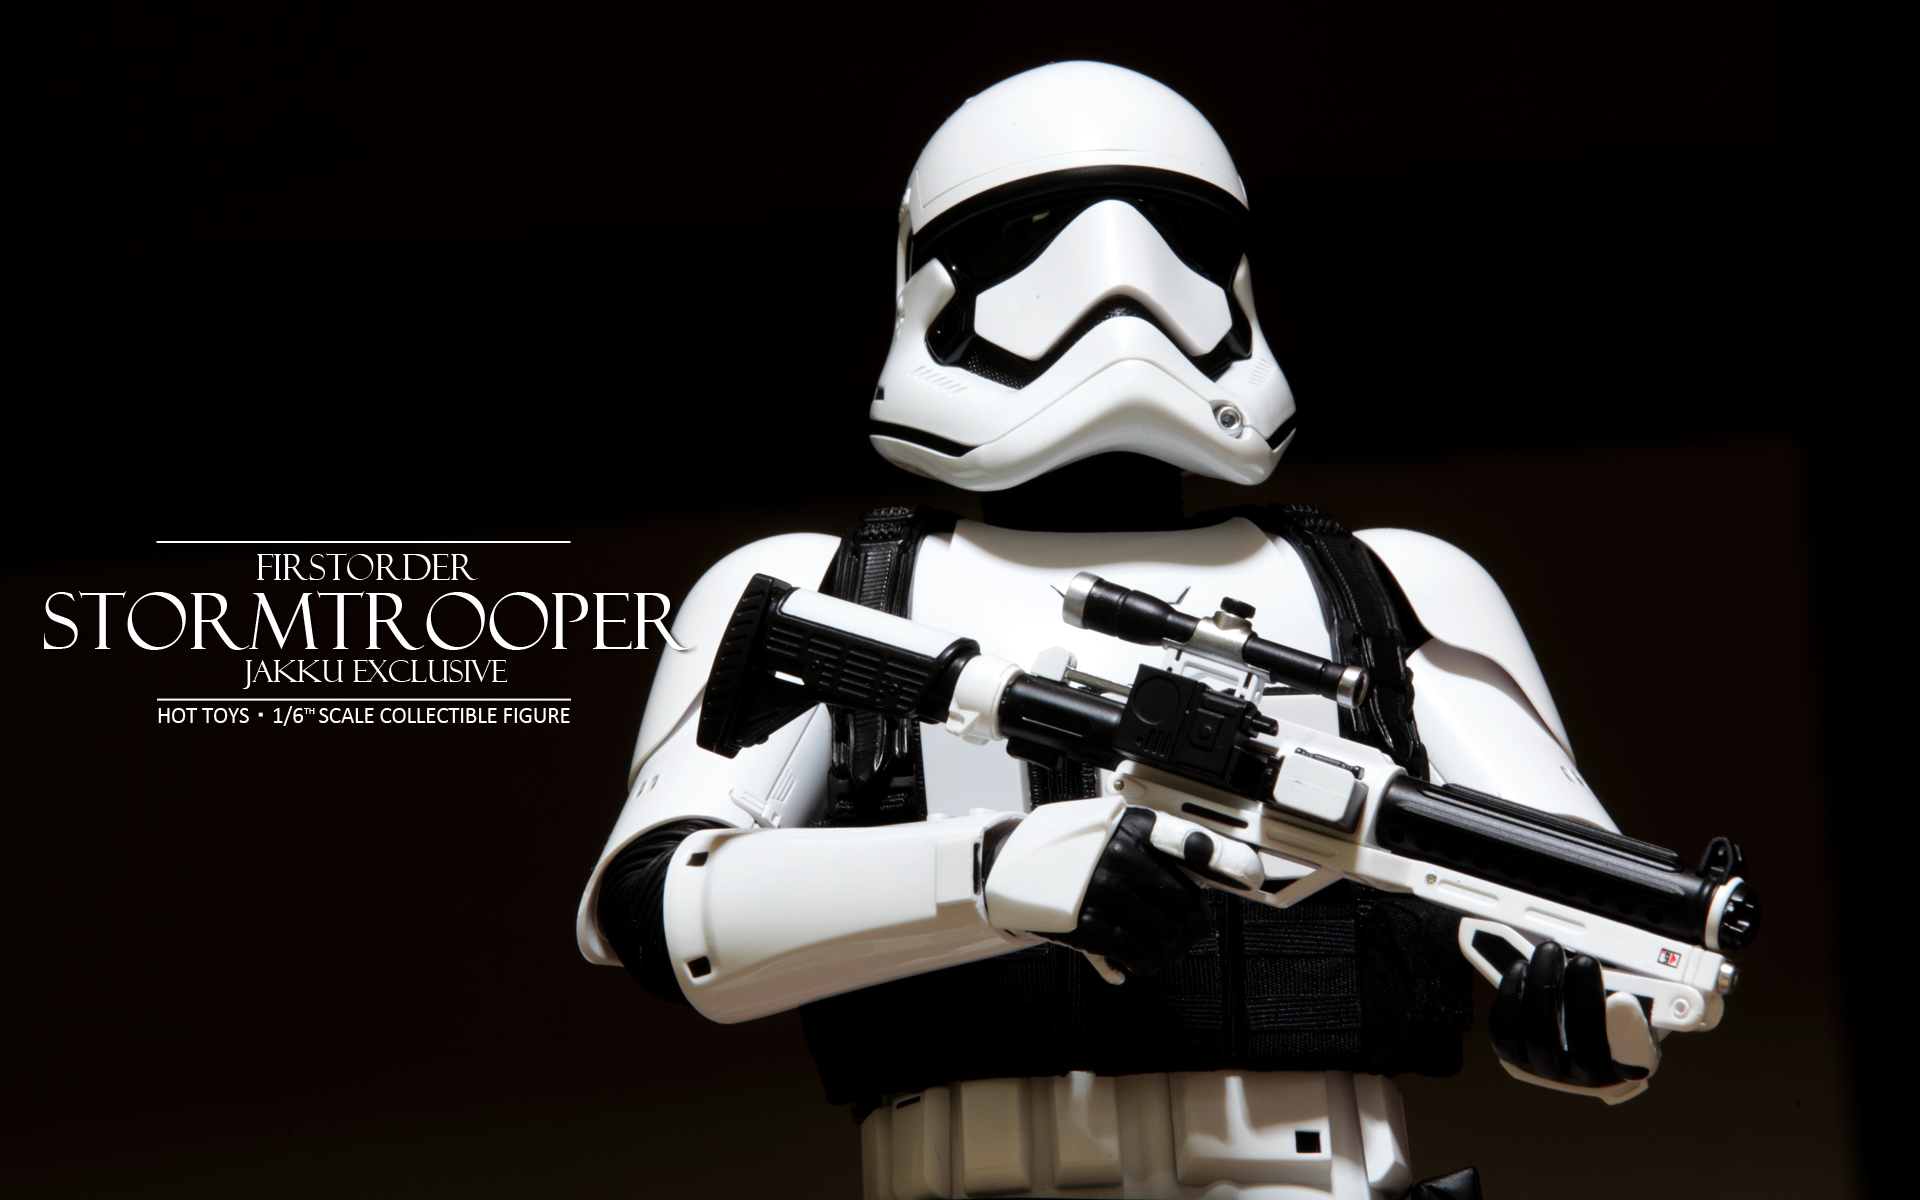 hottoys-star-wars-the-force-awakens-first-order-stormtrooper-jakku-picture08